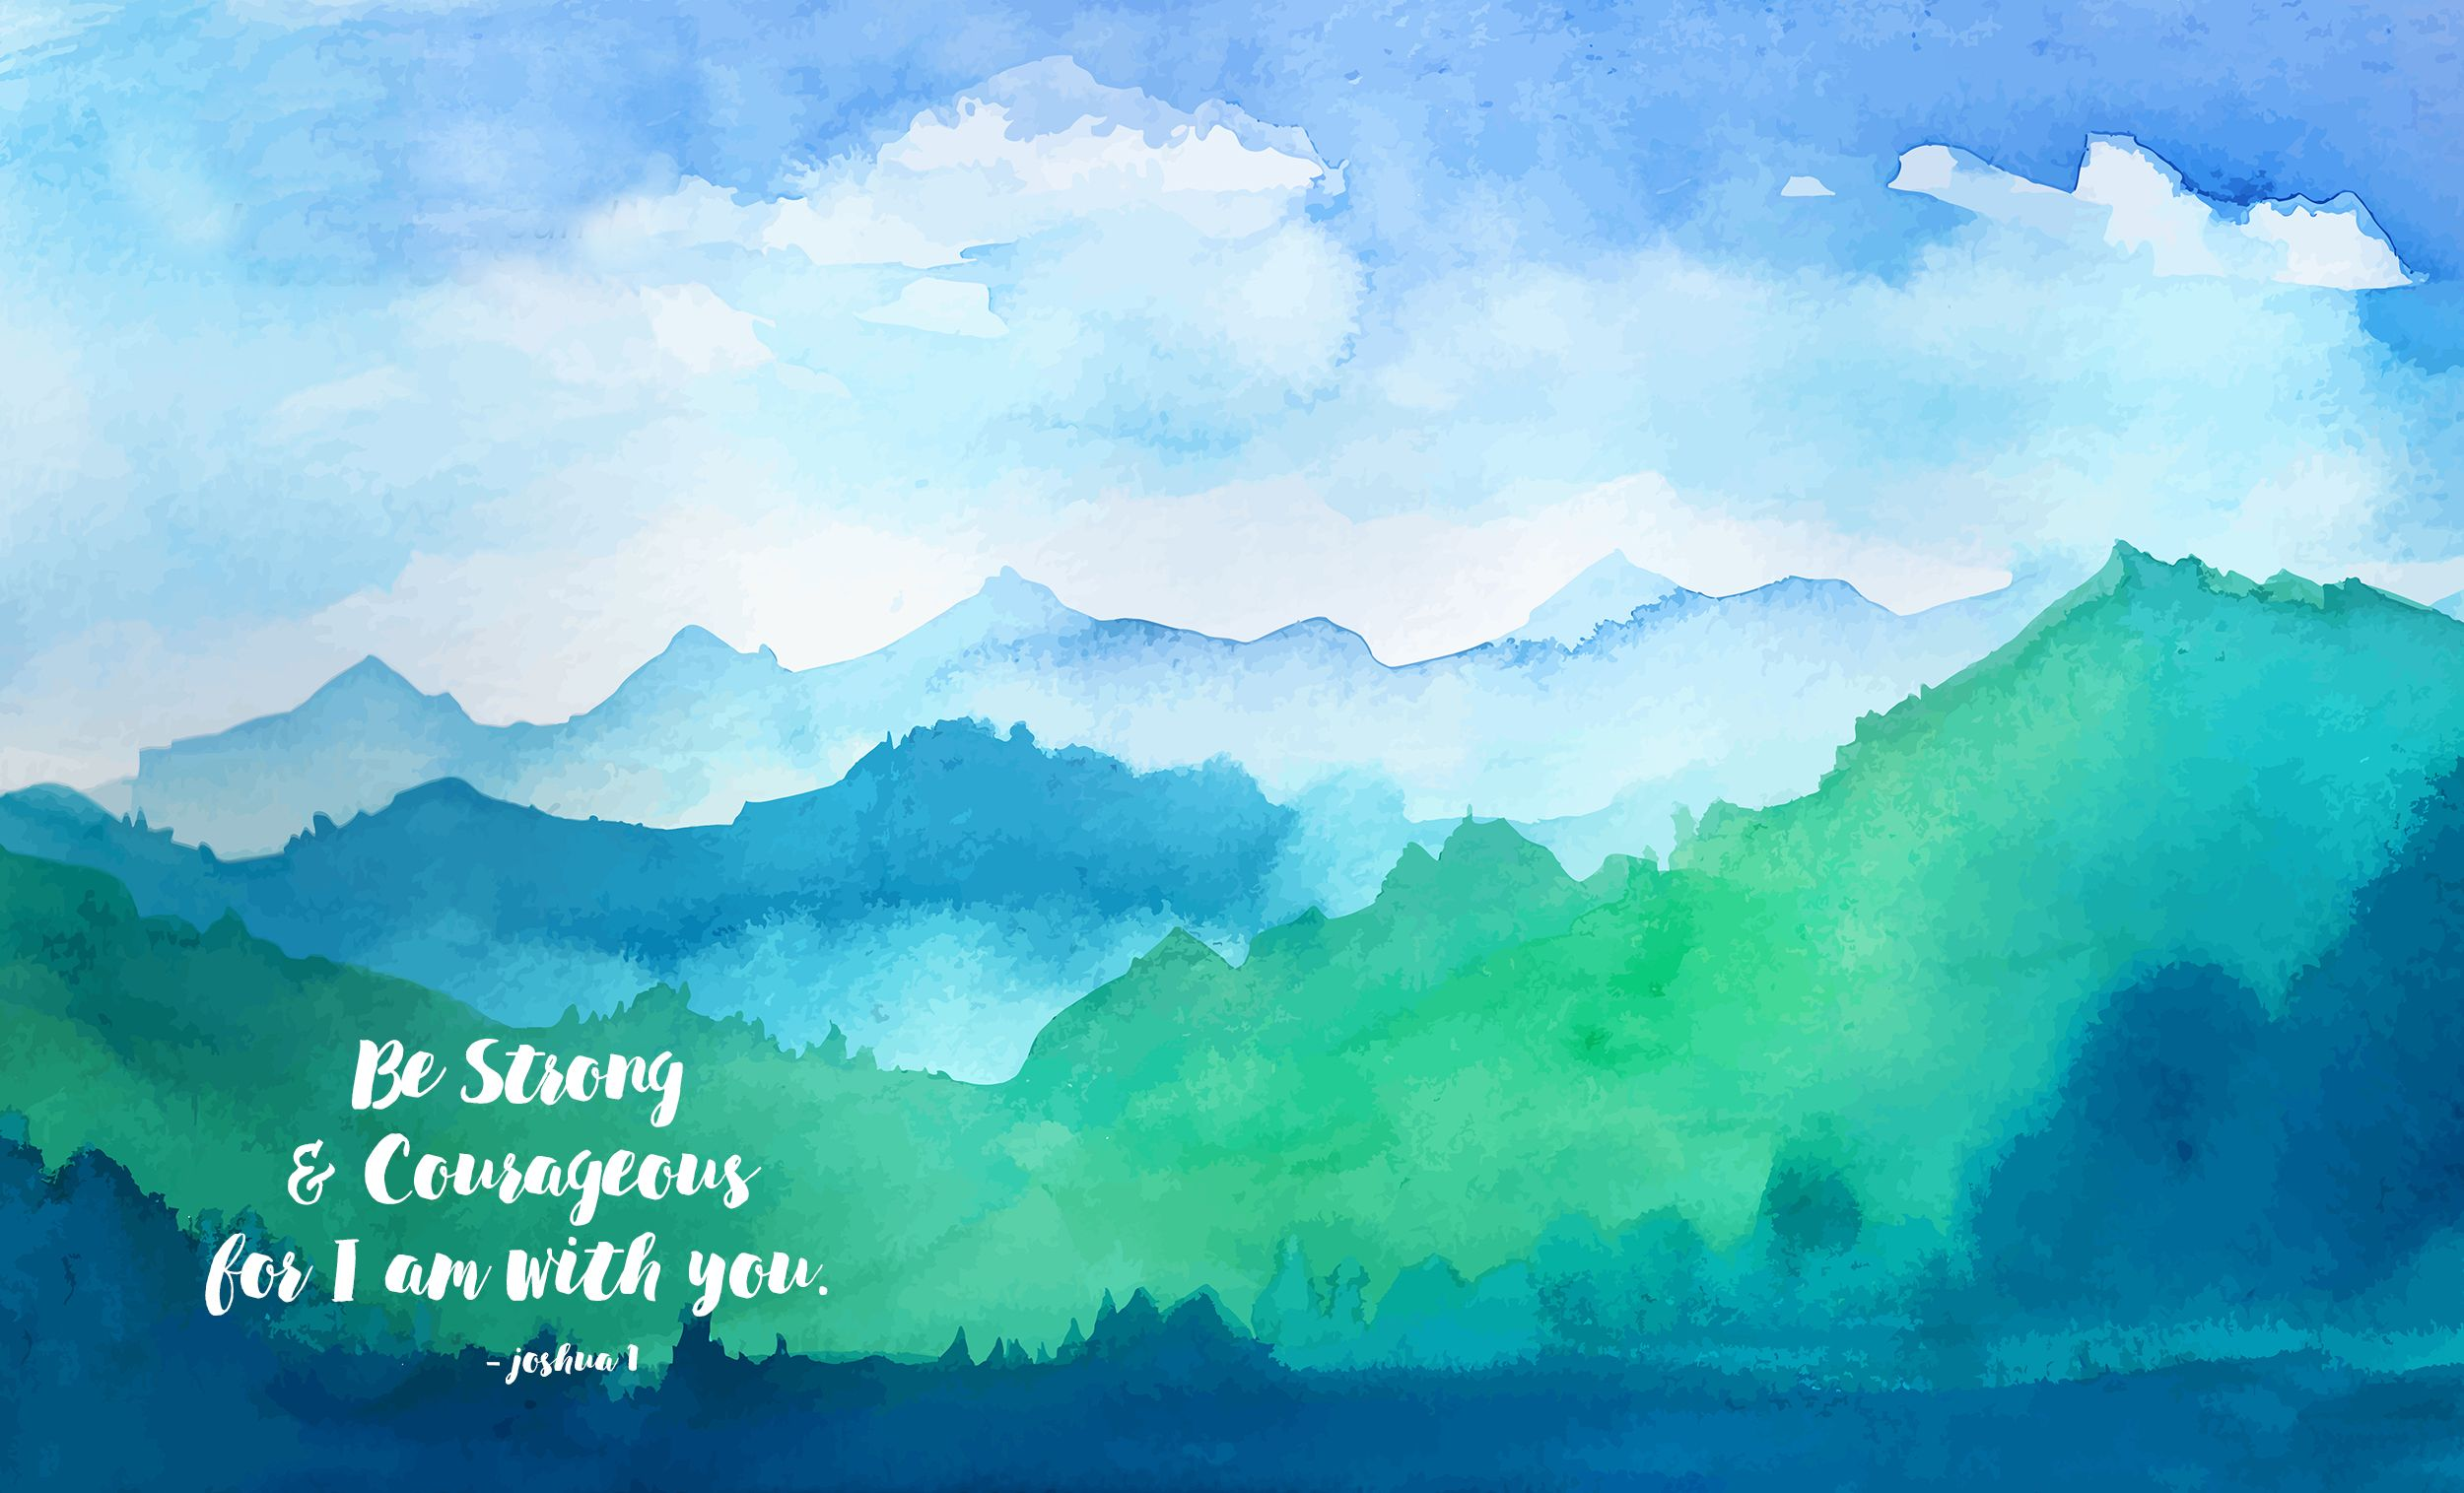 Desktop Wallpaper Scripture Abstract Art Painting Watercolor Mountains Abstract